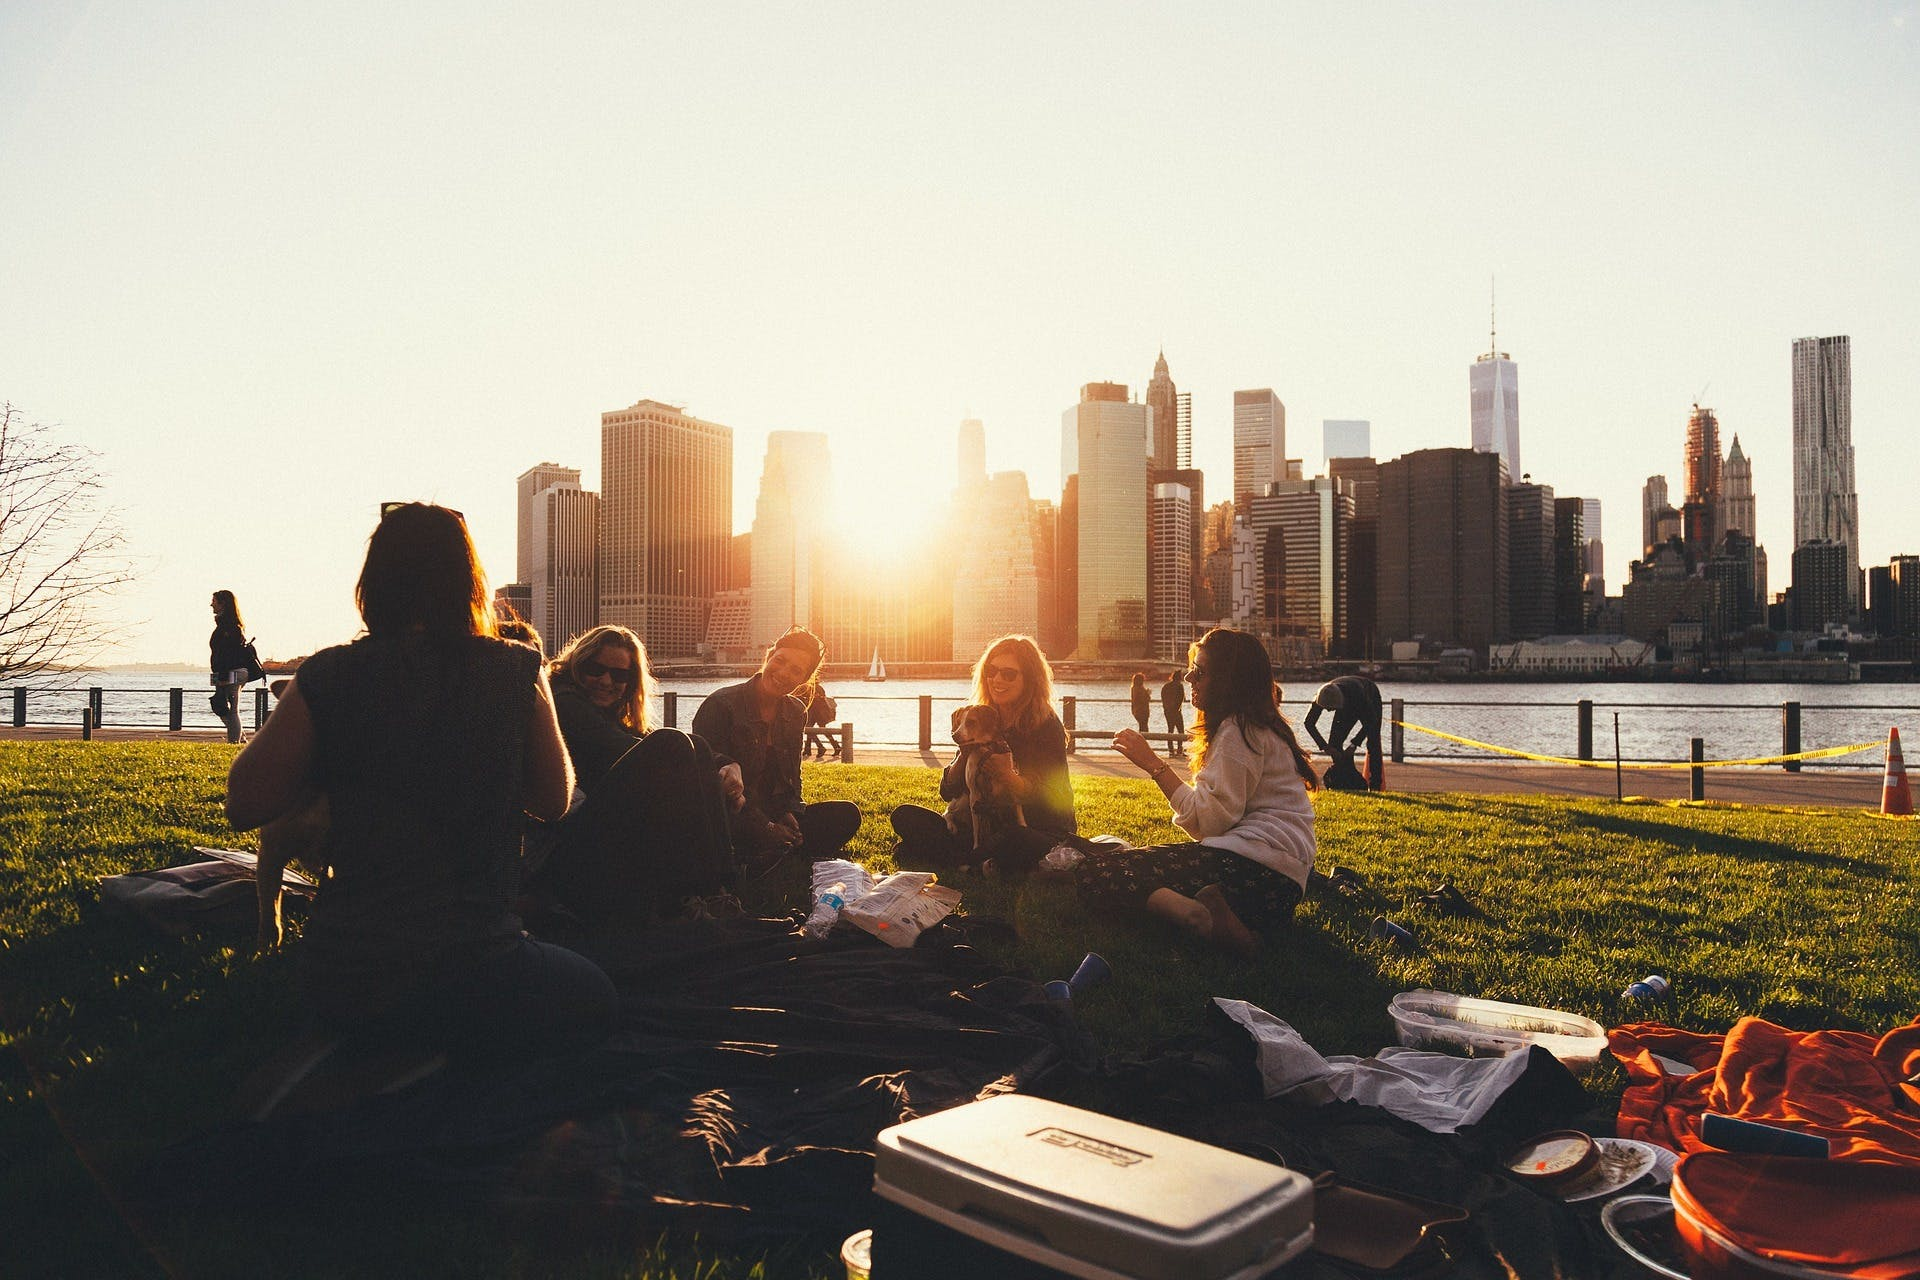 A group of people sitting down in the park at sunset in New York